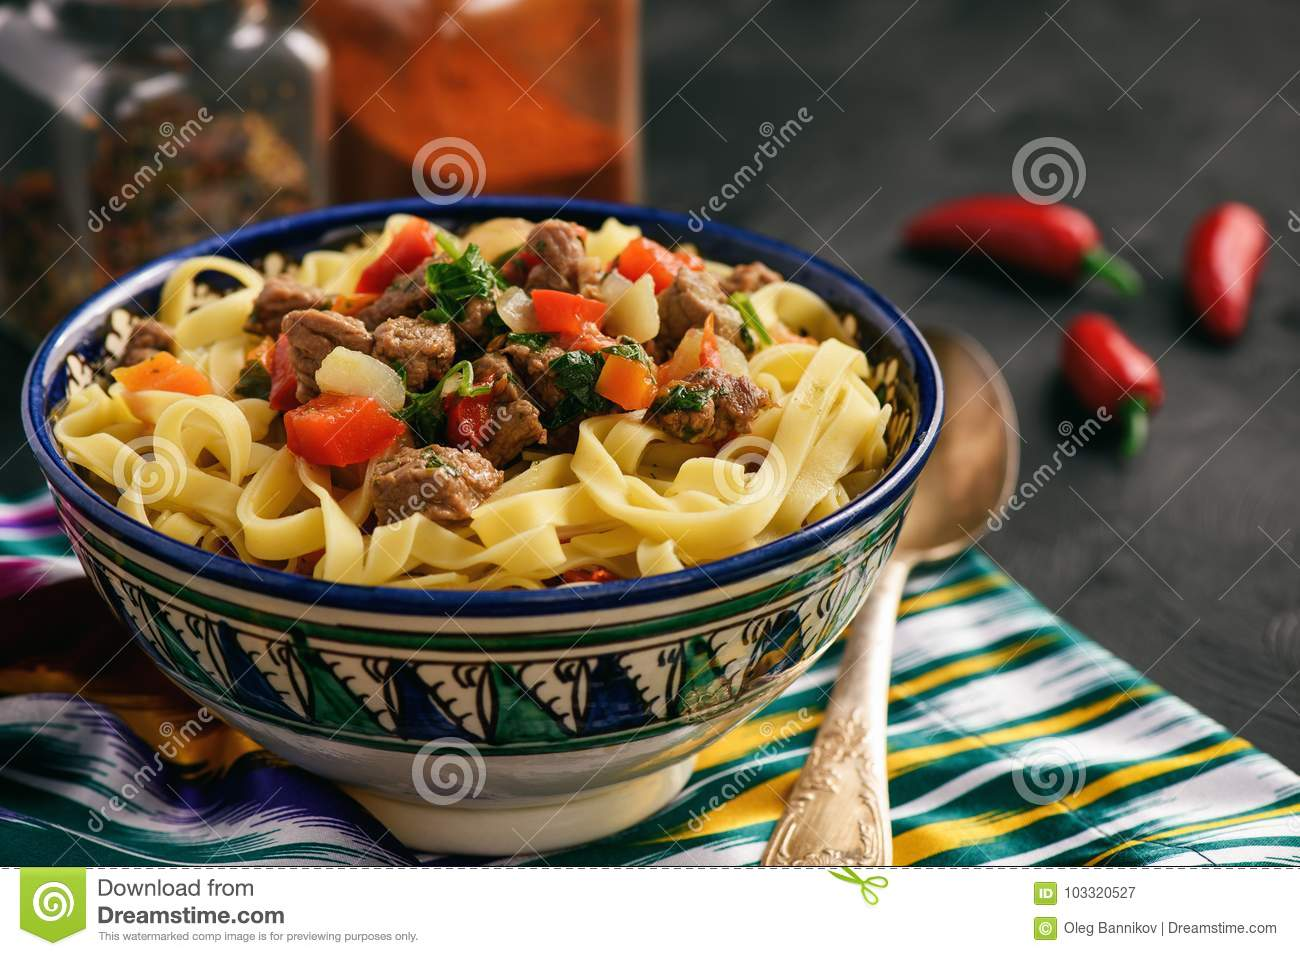 Traditional asian noodle soup with vegetables and meat, known as lagman. Oriental, uzbek style cuisine.